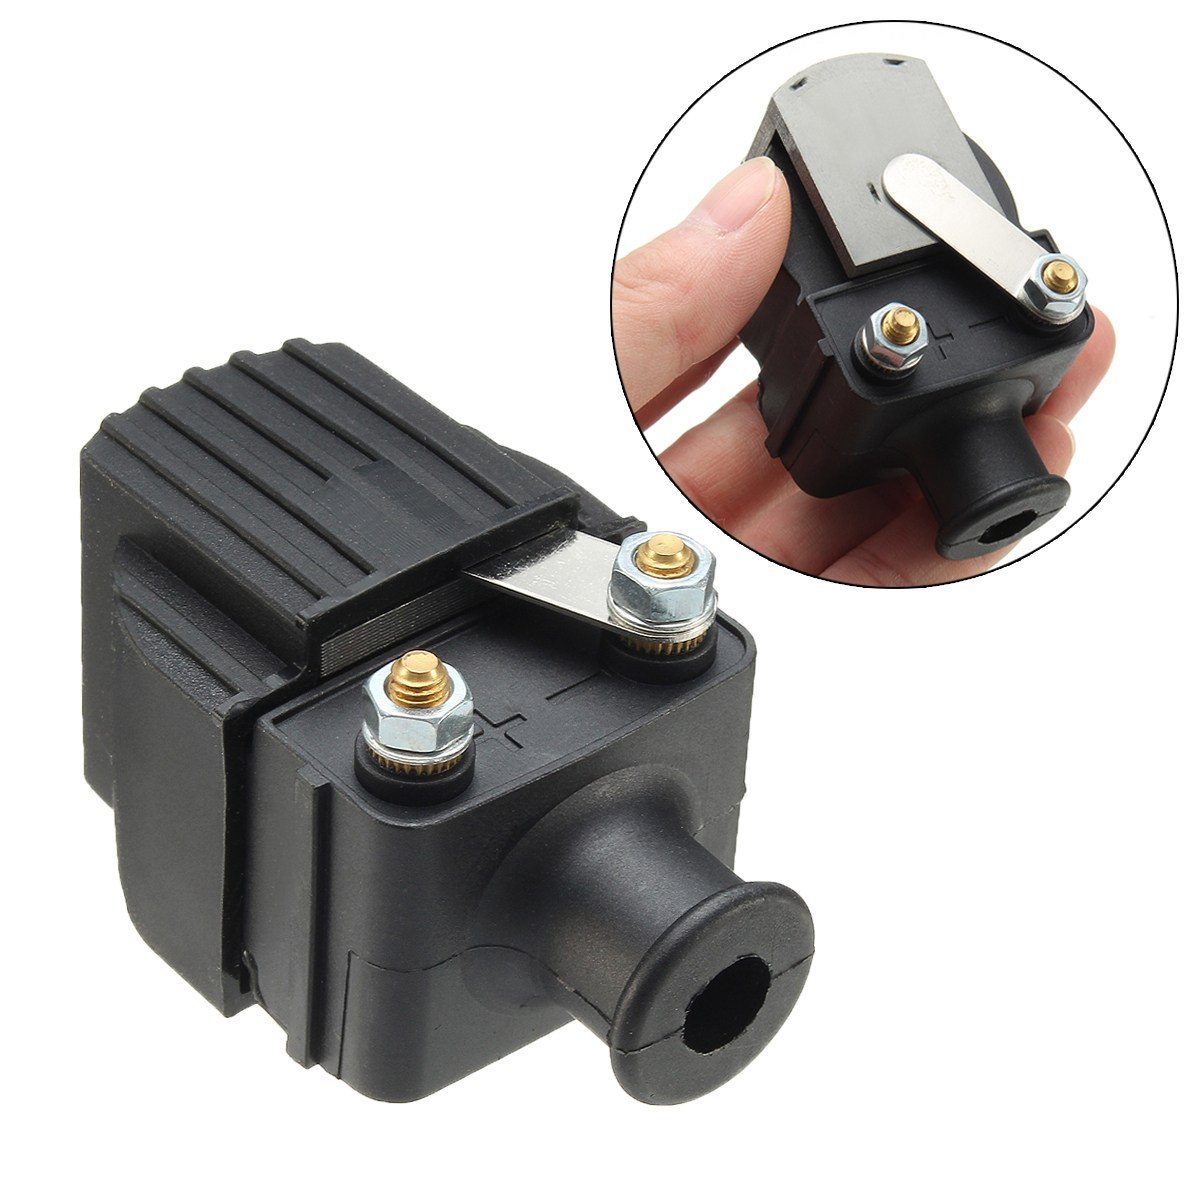 Rubber+Metal Outboard Engine Ignition Coil Professtional Part 1 Pcs